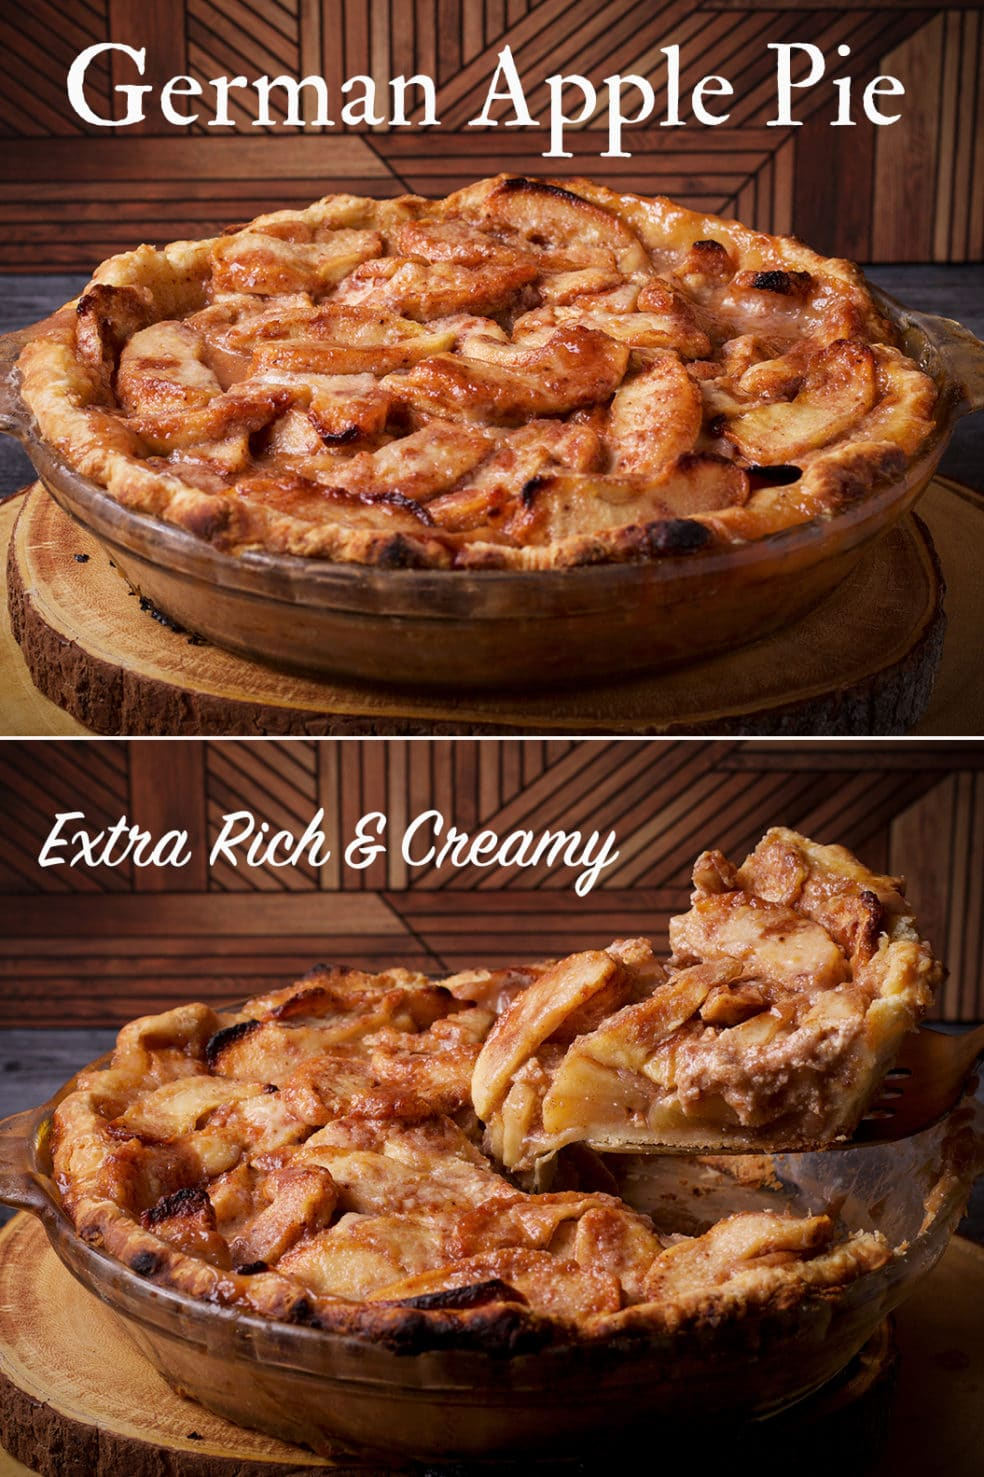 Two photos of German apple pie. The first photo shows a whole pie and the second photo shows serving a slice of pie.